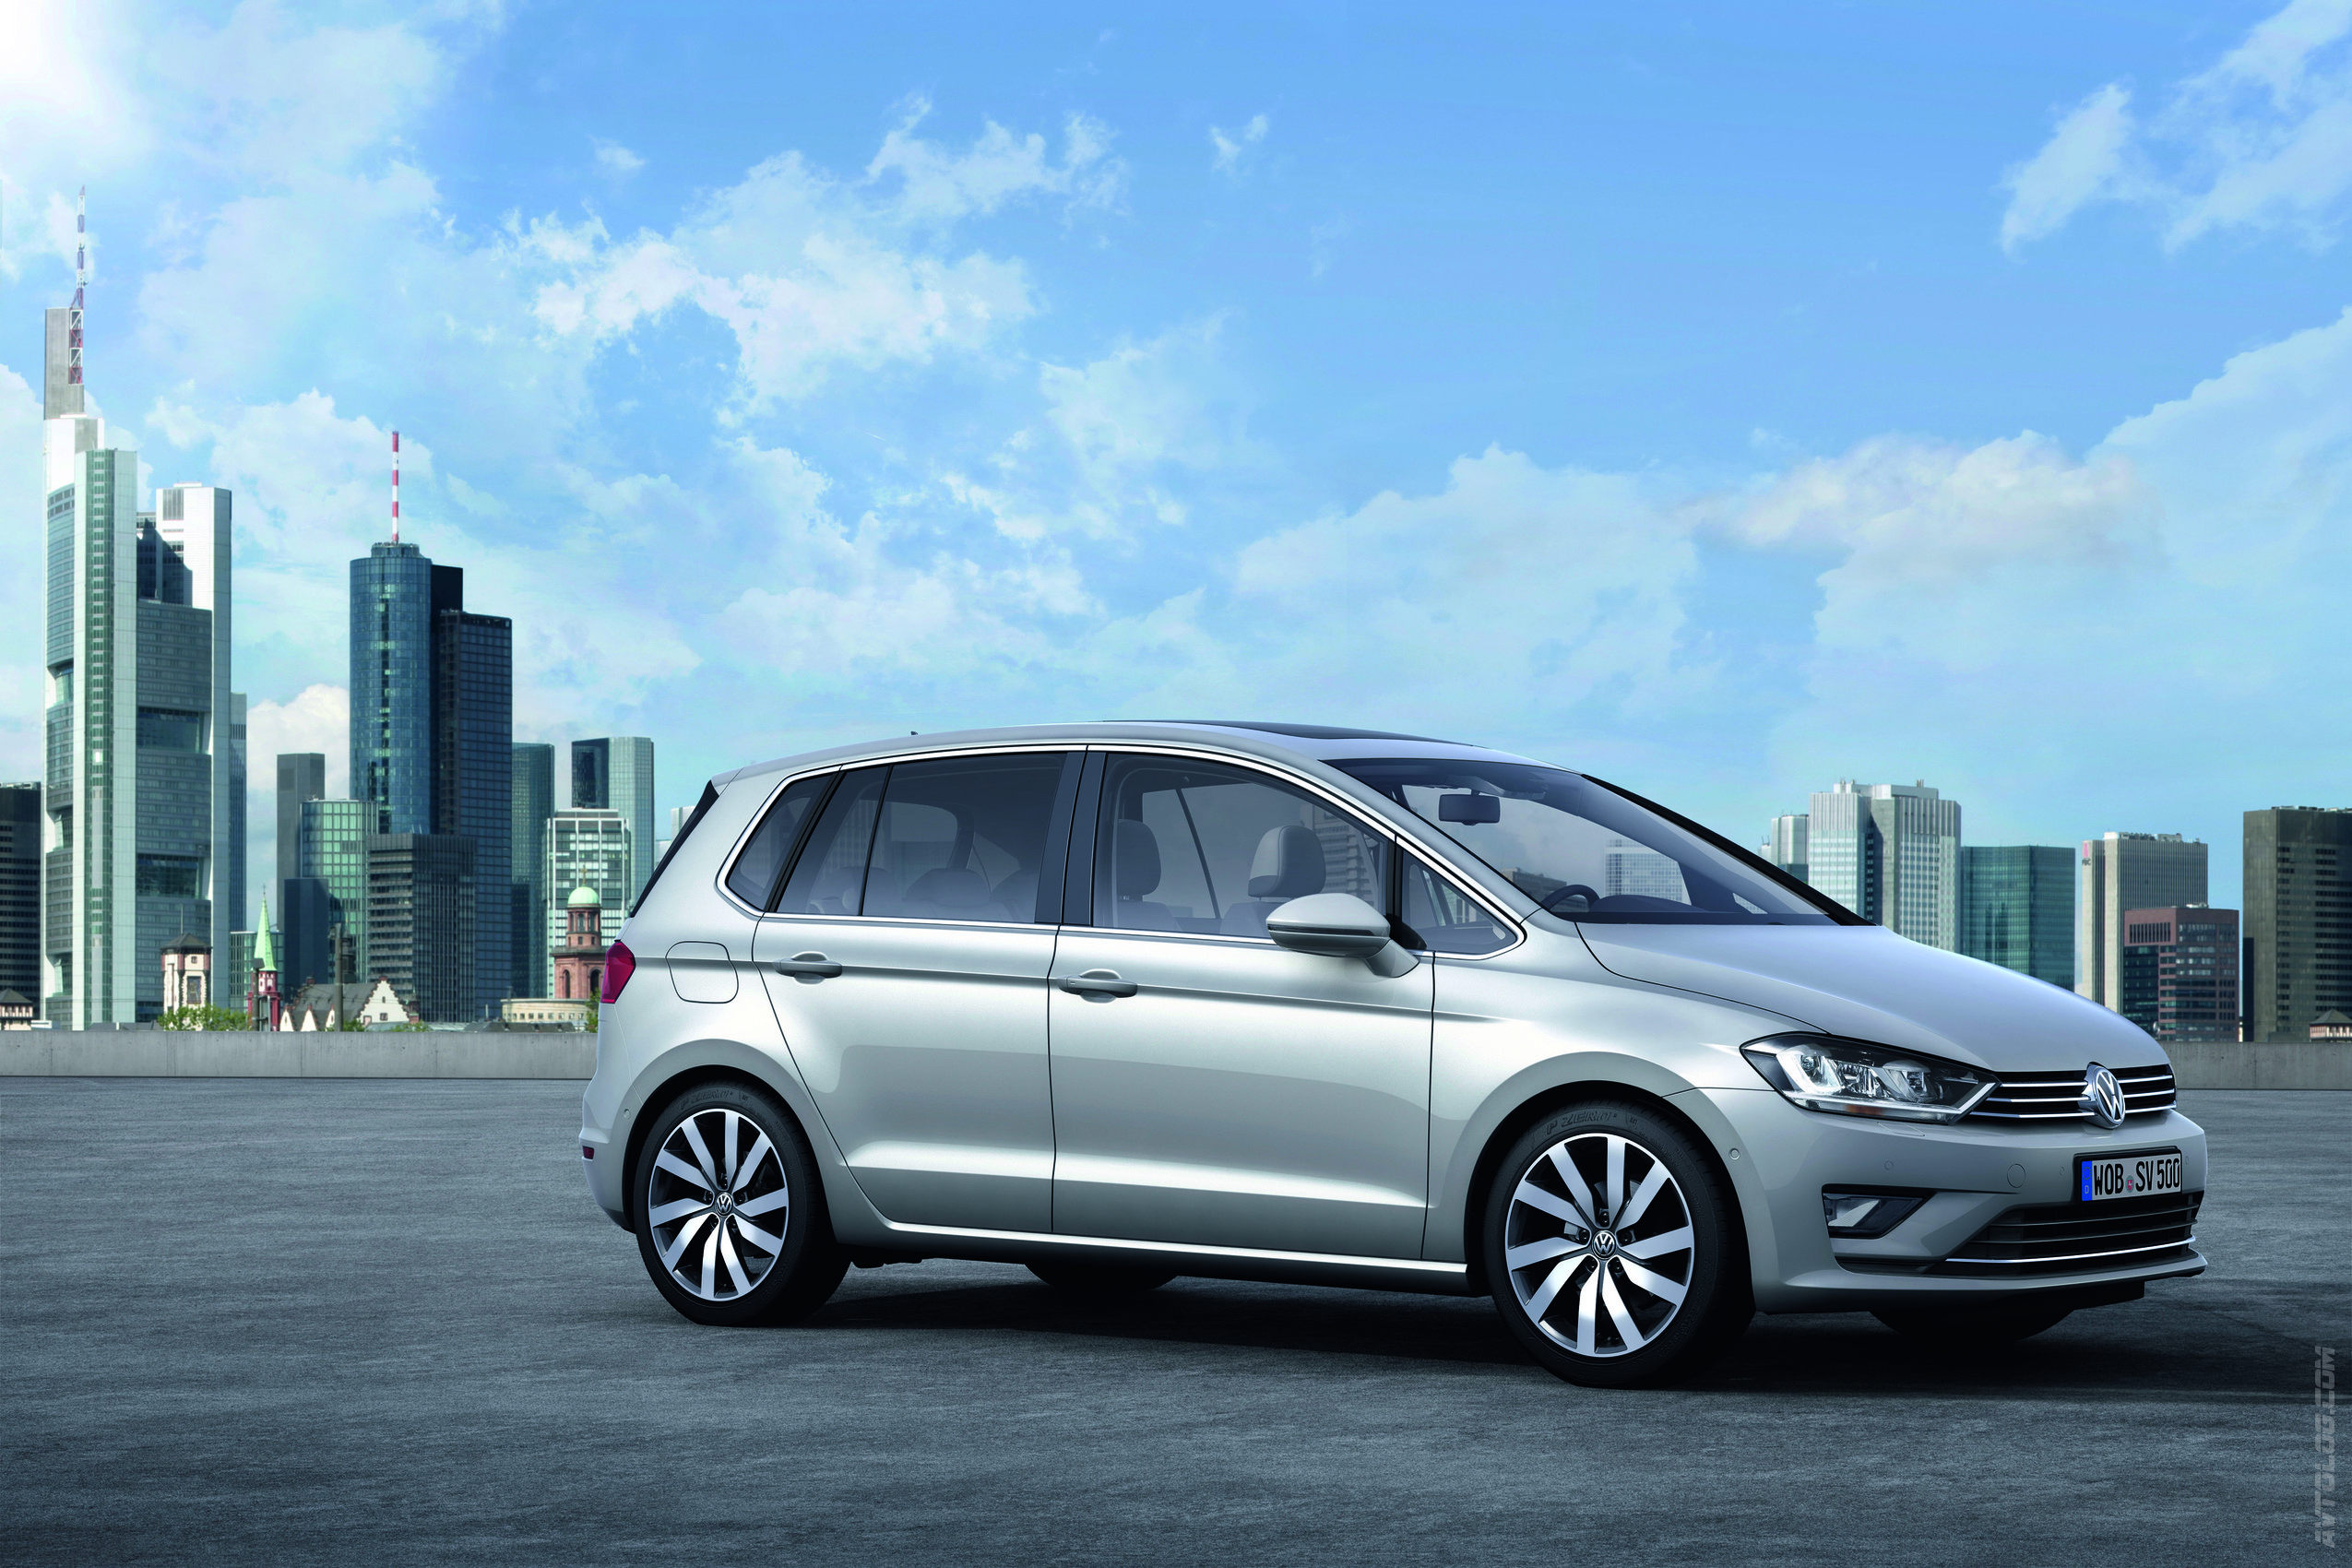 2018 Volkswagen Golf Sportsvan Concept photo - 4